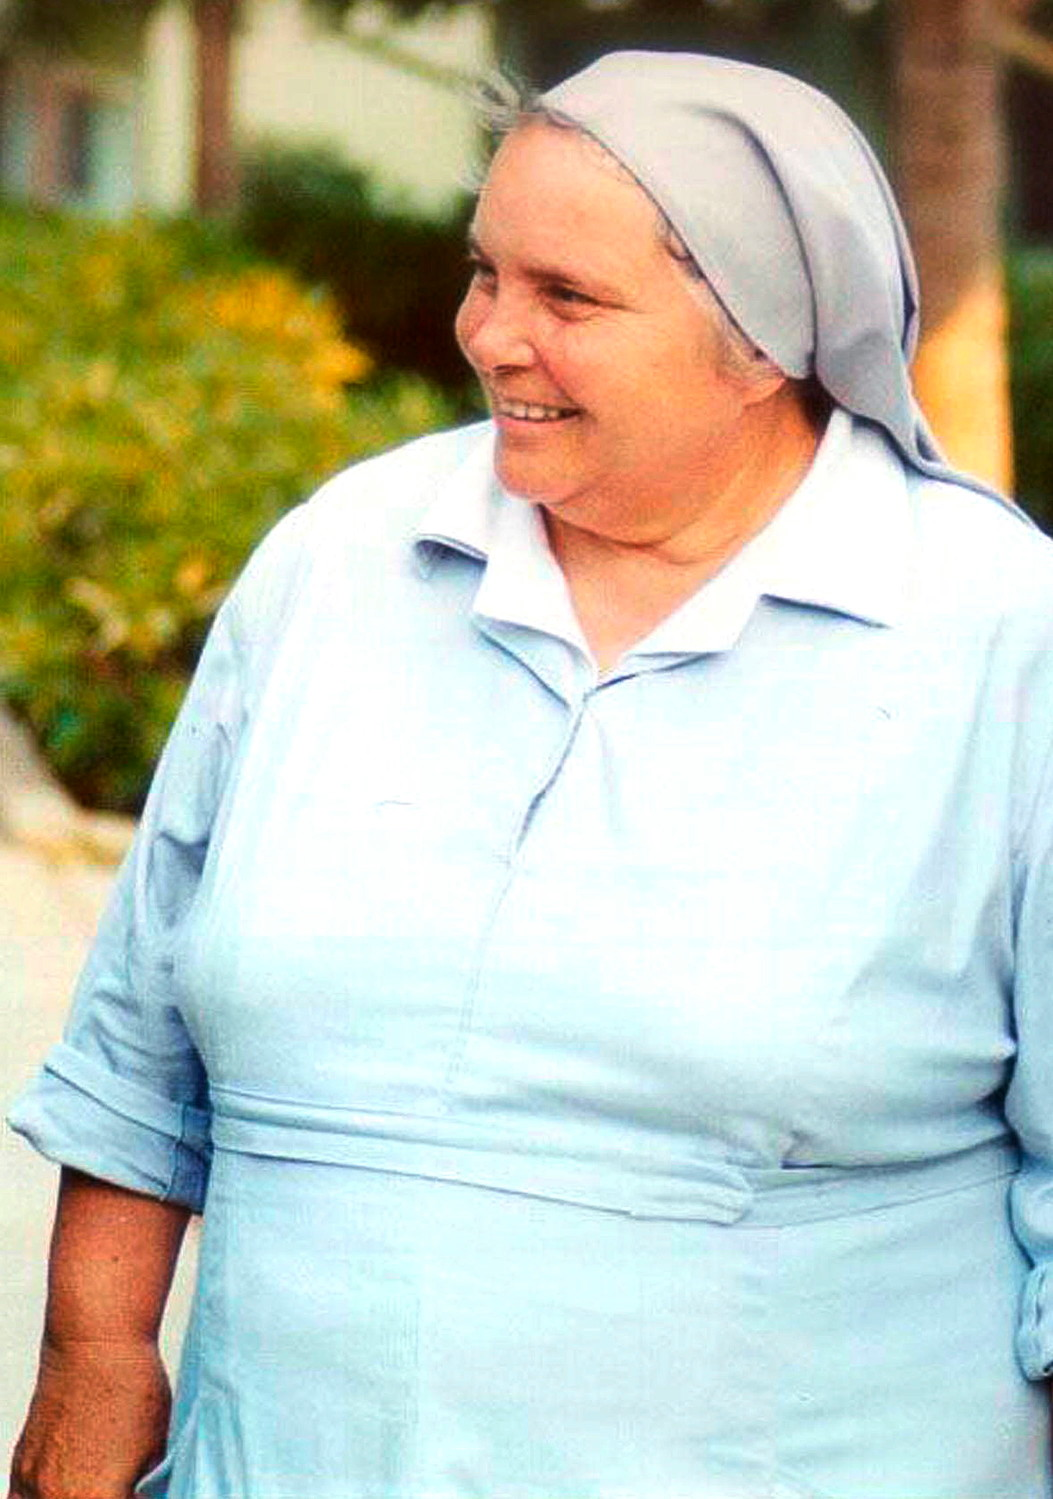 Consolata Sister Leonella Sgorbati, who was murdered in Somalia in 2006, will be beatified in Piacenza, Italy, May 26. She is pictured in an undated photo.